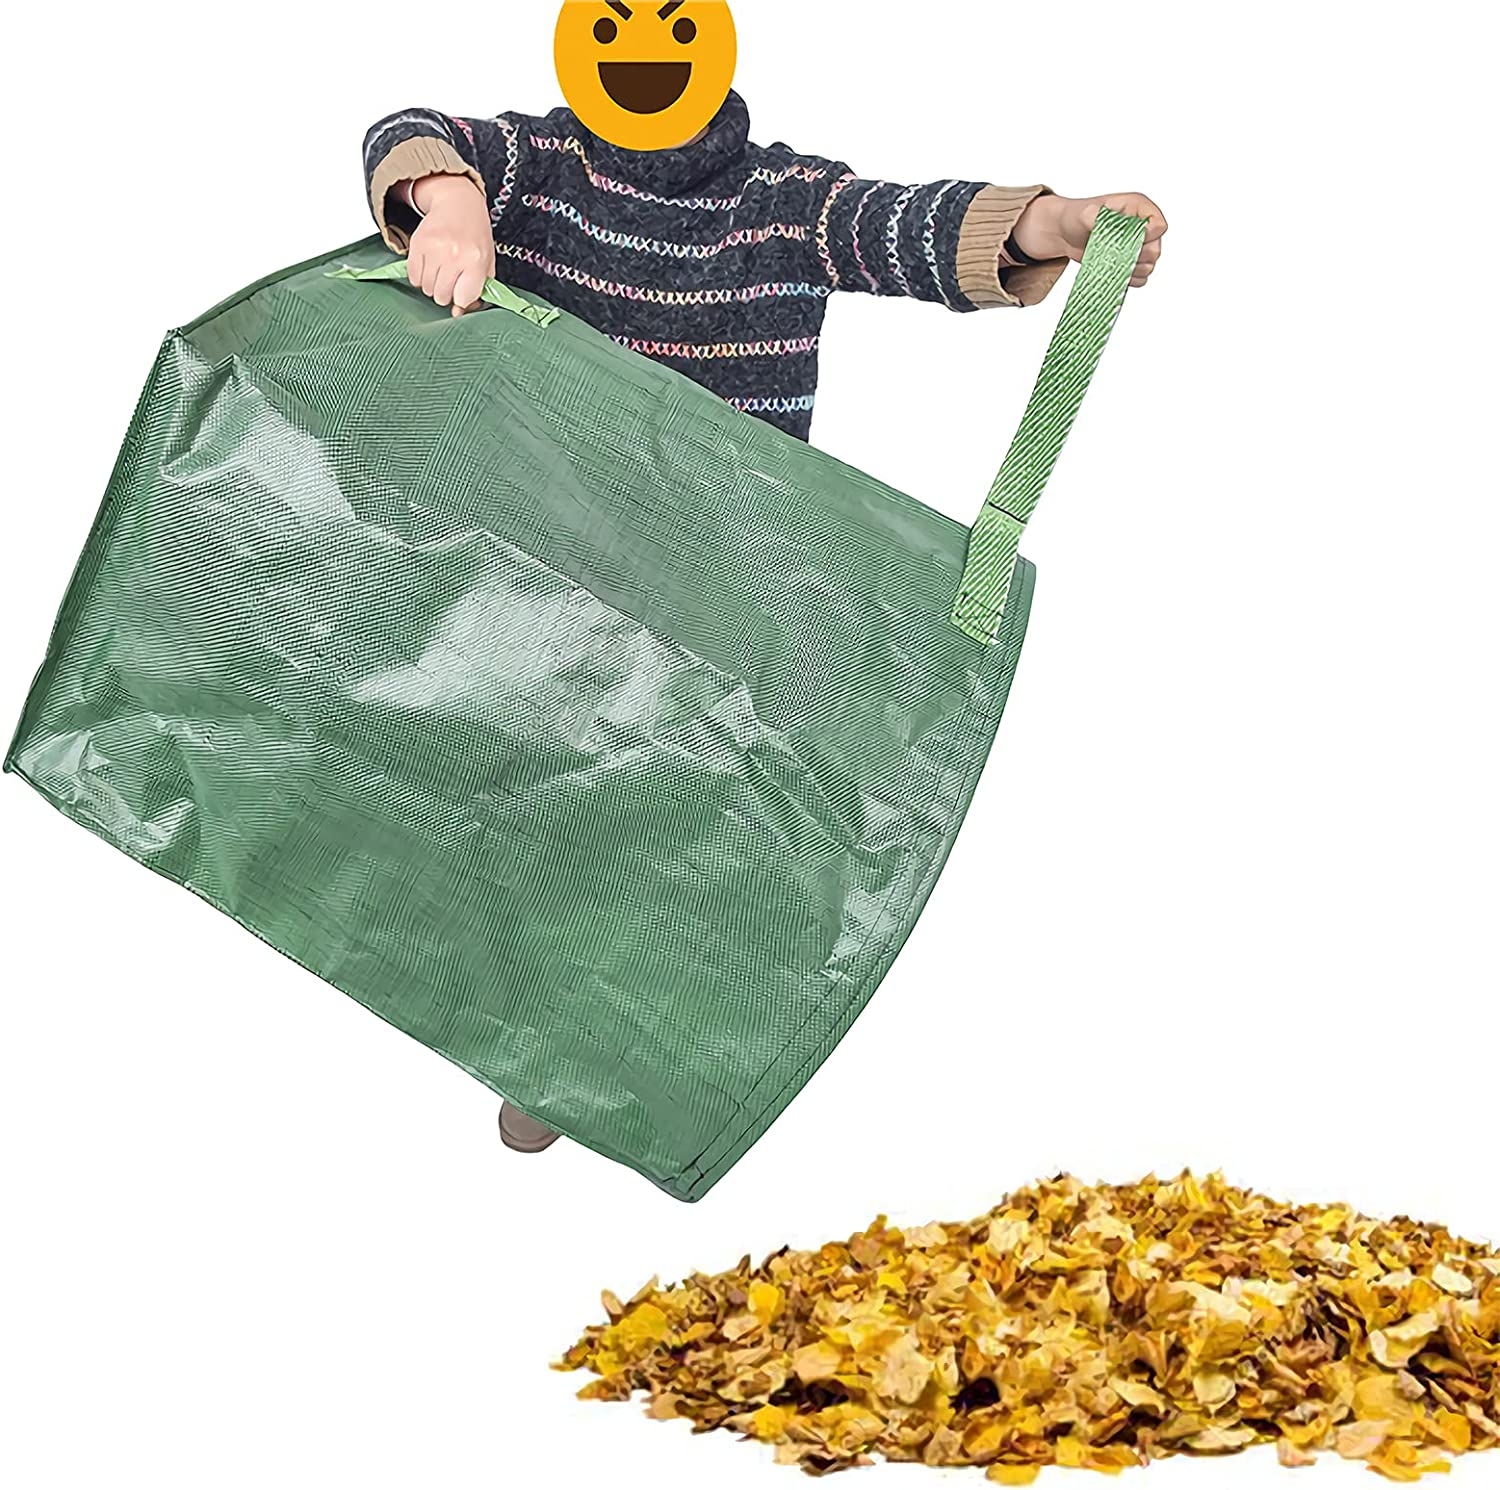 Reusable Limited time trial price Yard Waste Bags We OFFer at cheap prices Large-Capacity Portable Garb Leaf Green